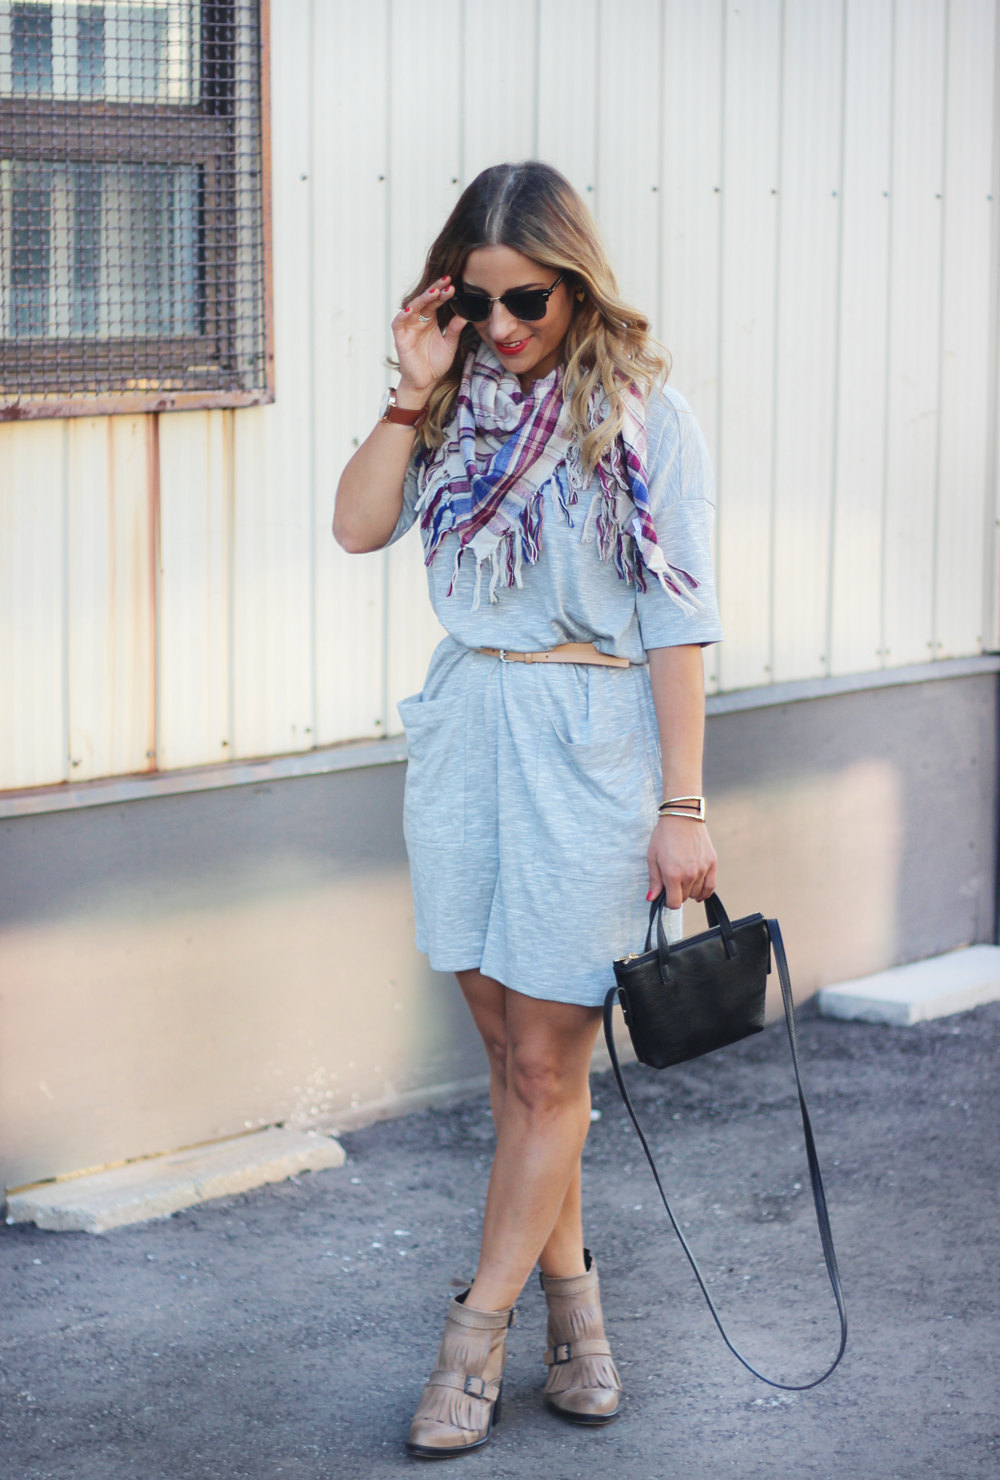 Toronto Fashion Blogger in Bench T-shirt dress